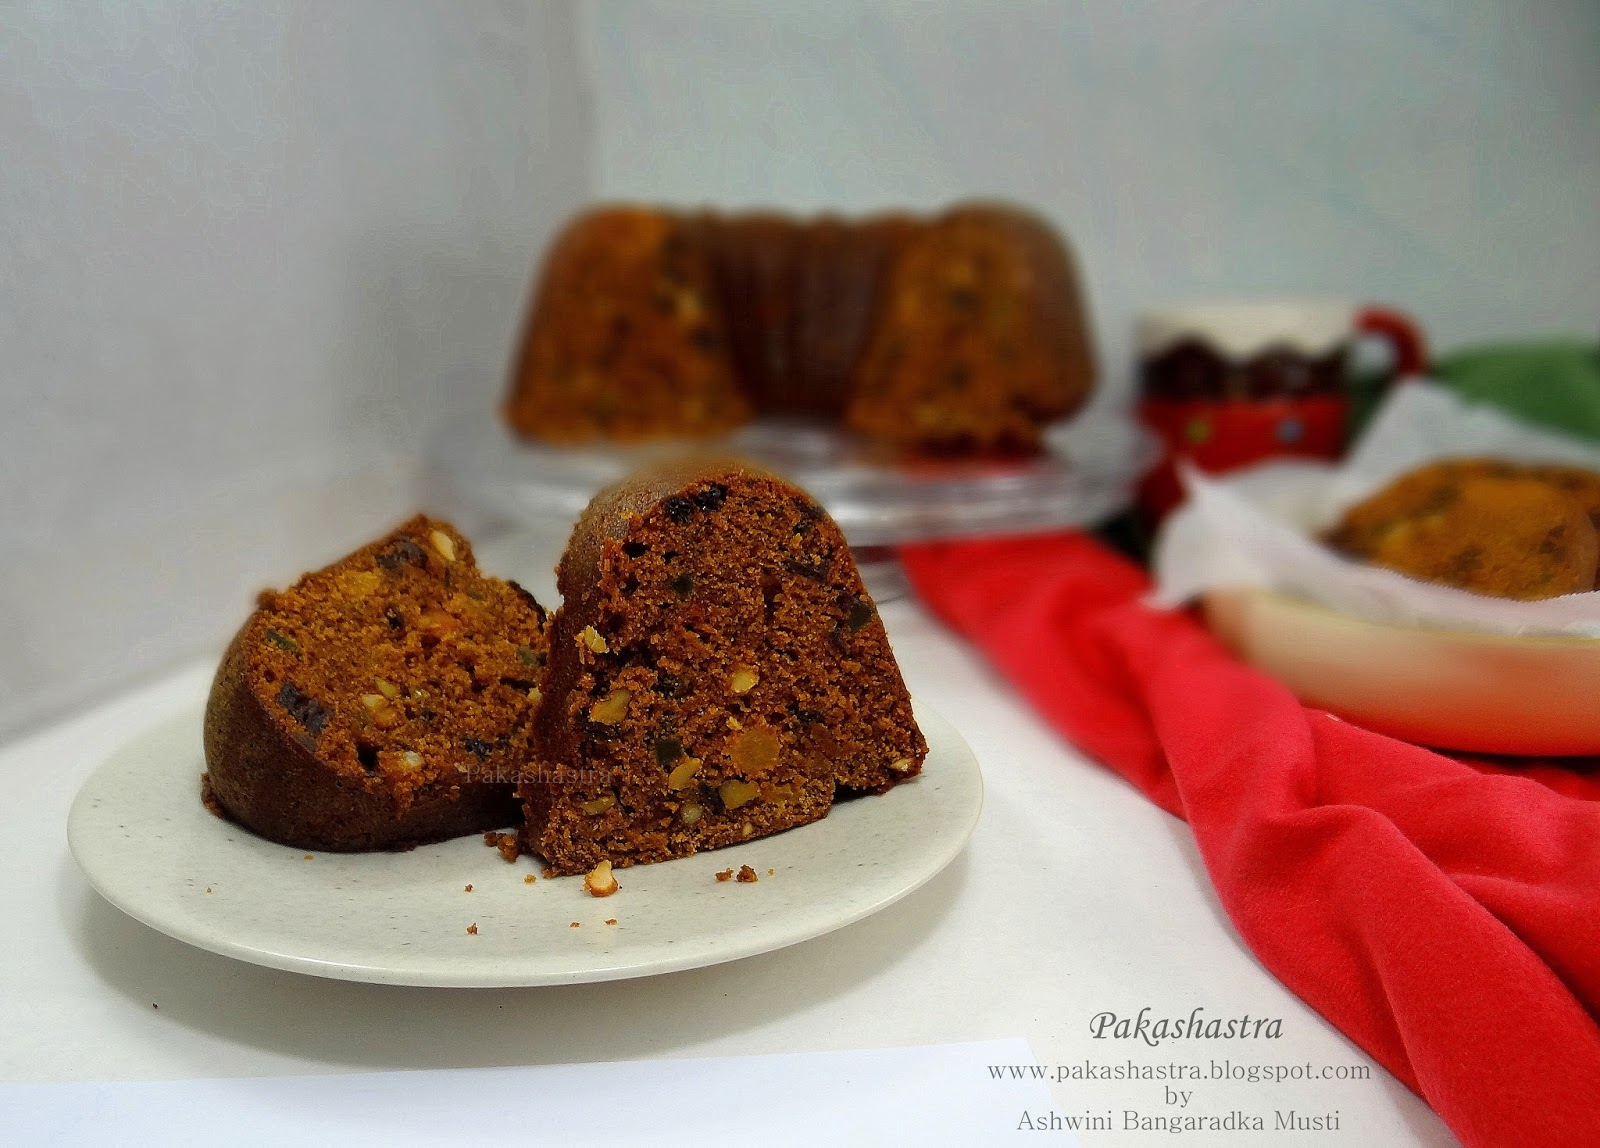 Christmas Cake Decorating Fruit And Nuts : Pakashastra: Eggless Plum Cake / Christmas Cake / Fruit ...